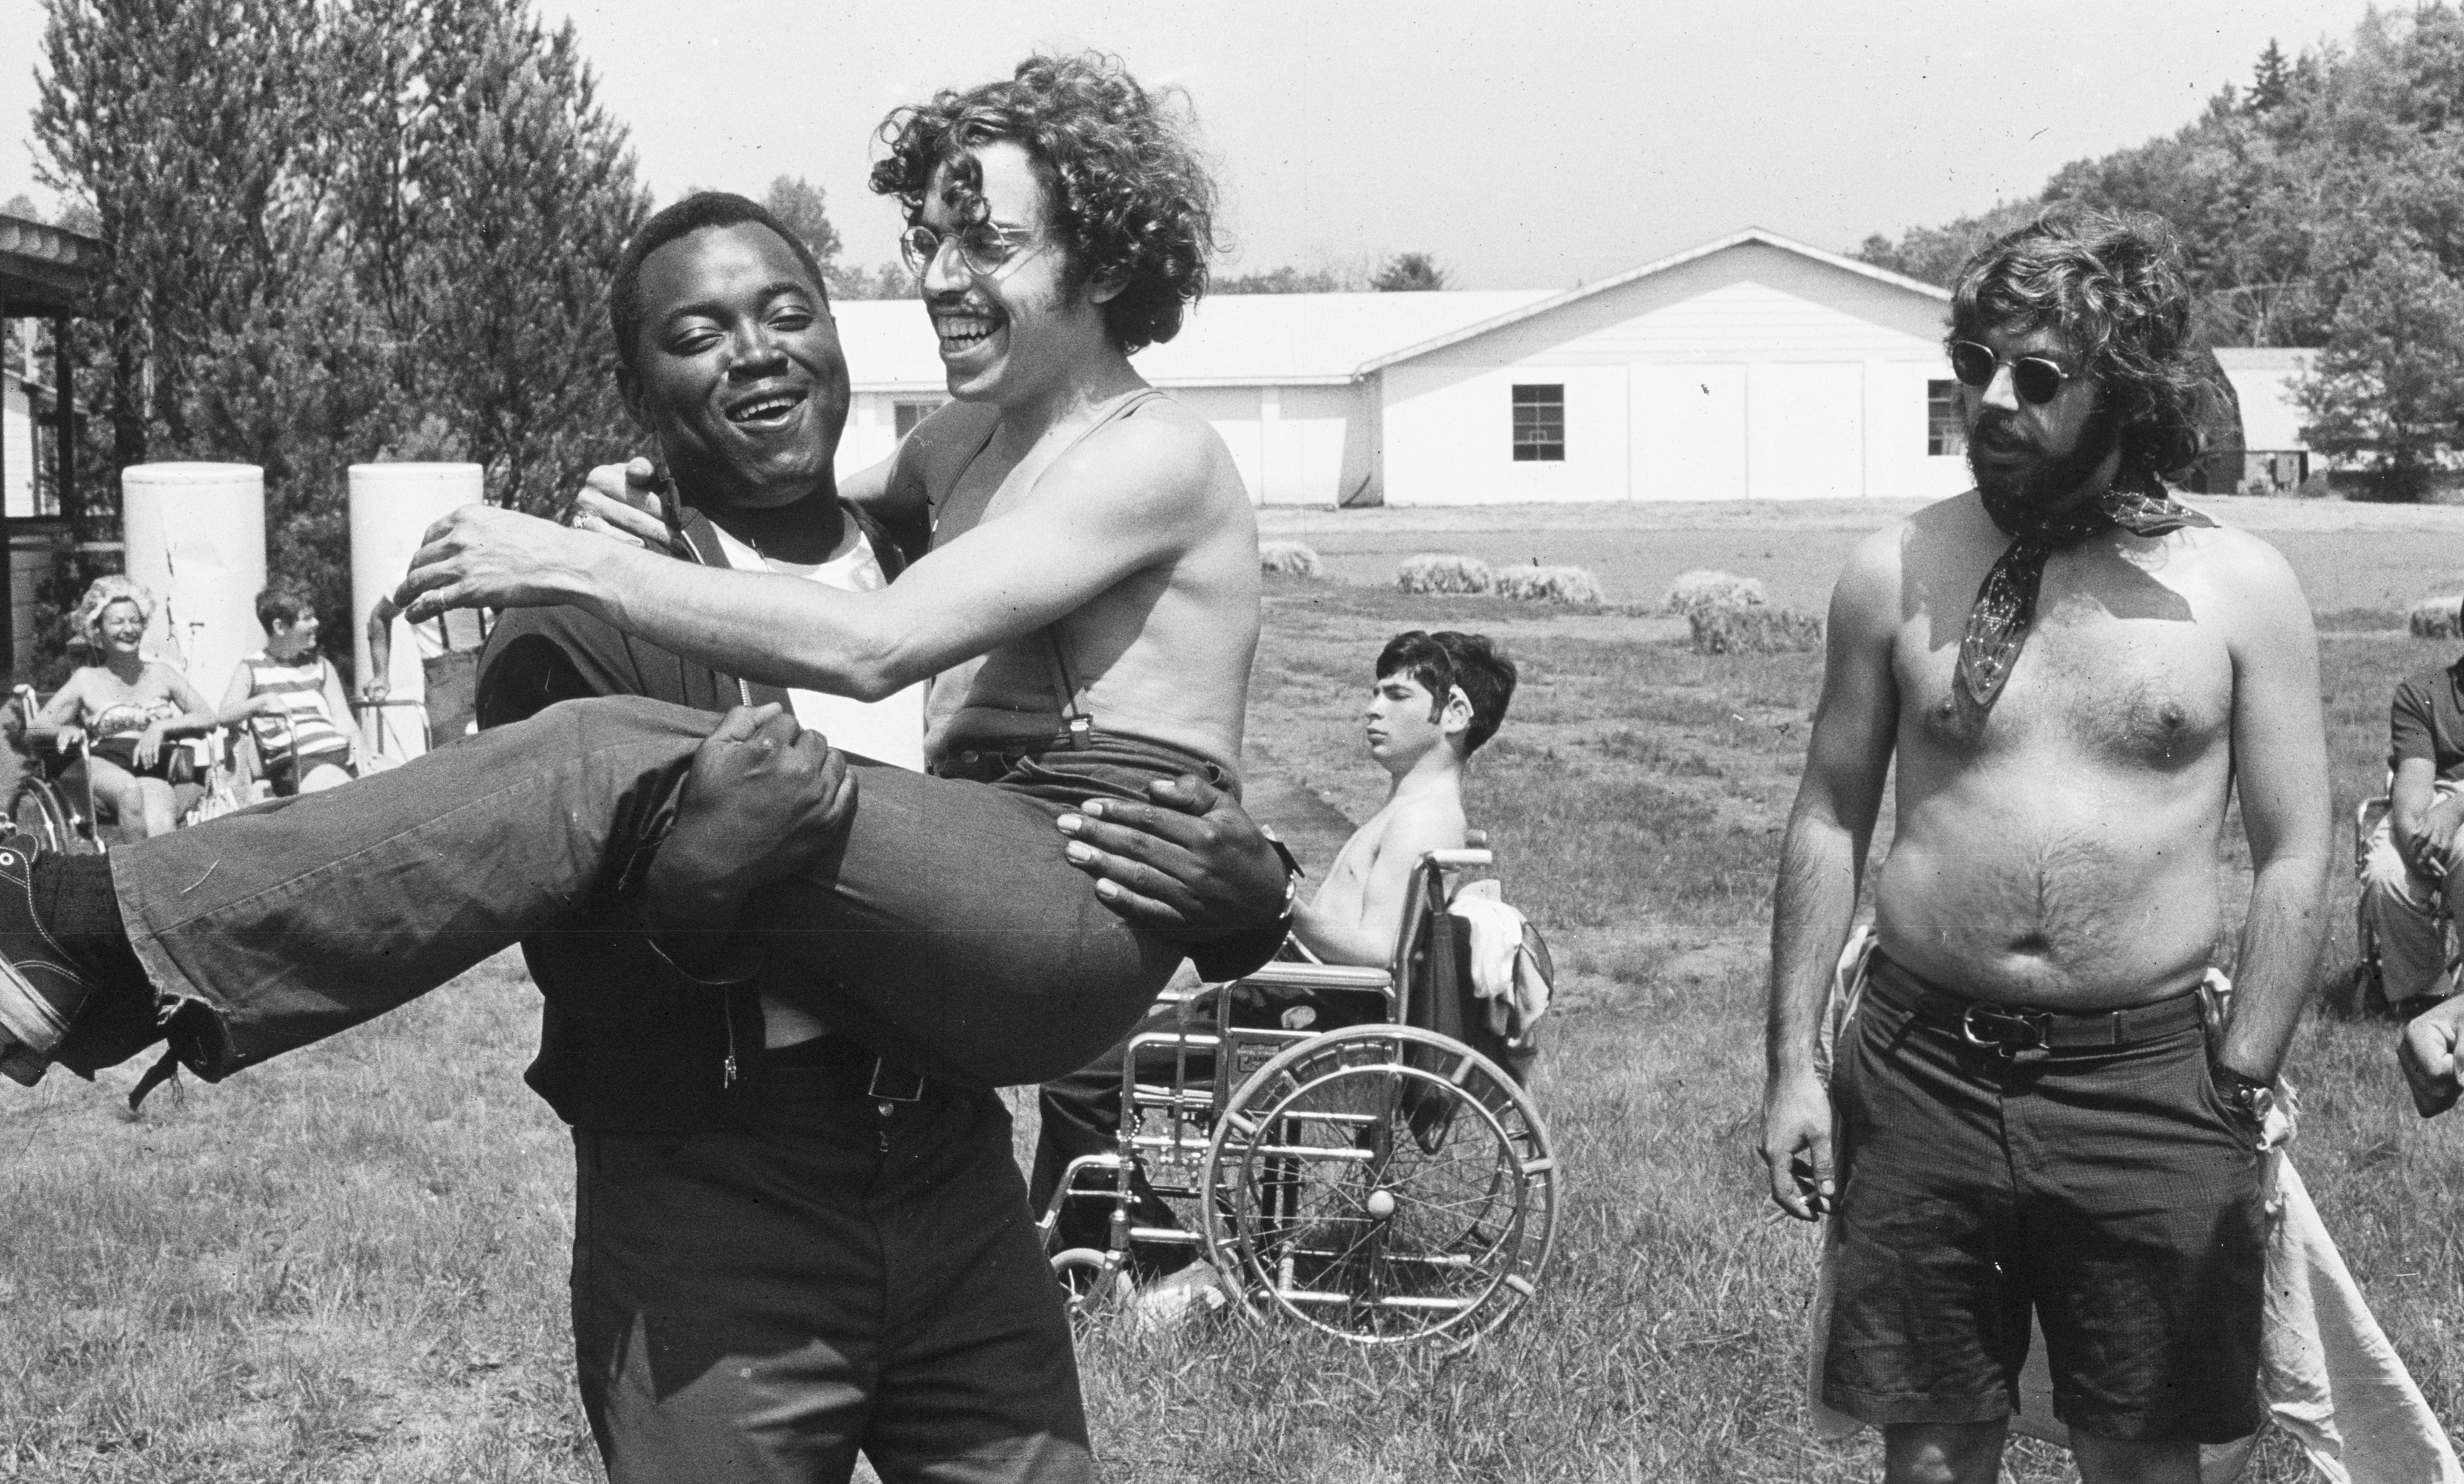 A black-and-white photograph of teenagers at camp. In the foreground, one camper carries his wheelchair-bound friend, both laughing, while another camper, shirtless and sporting a neckerchief, looks on.